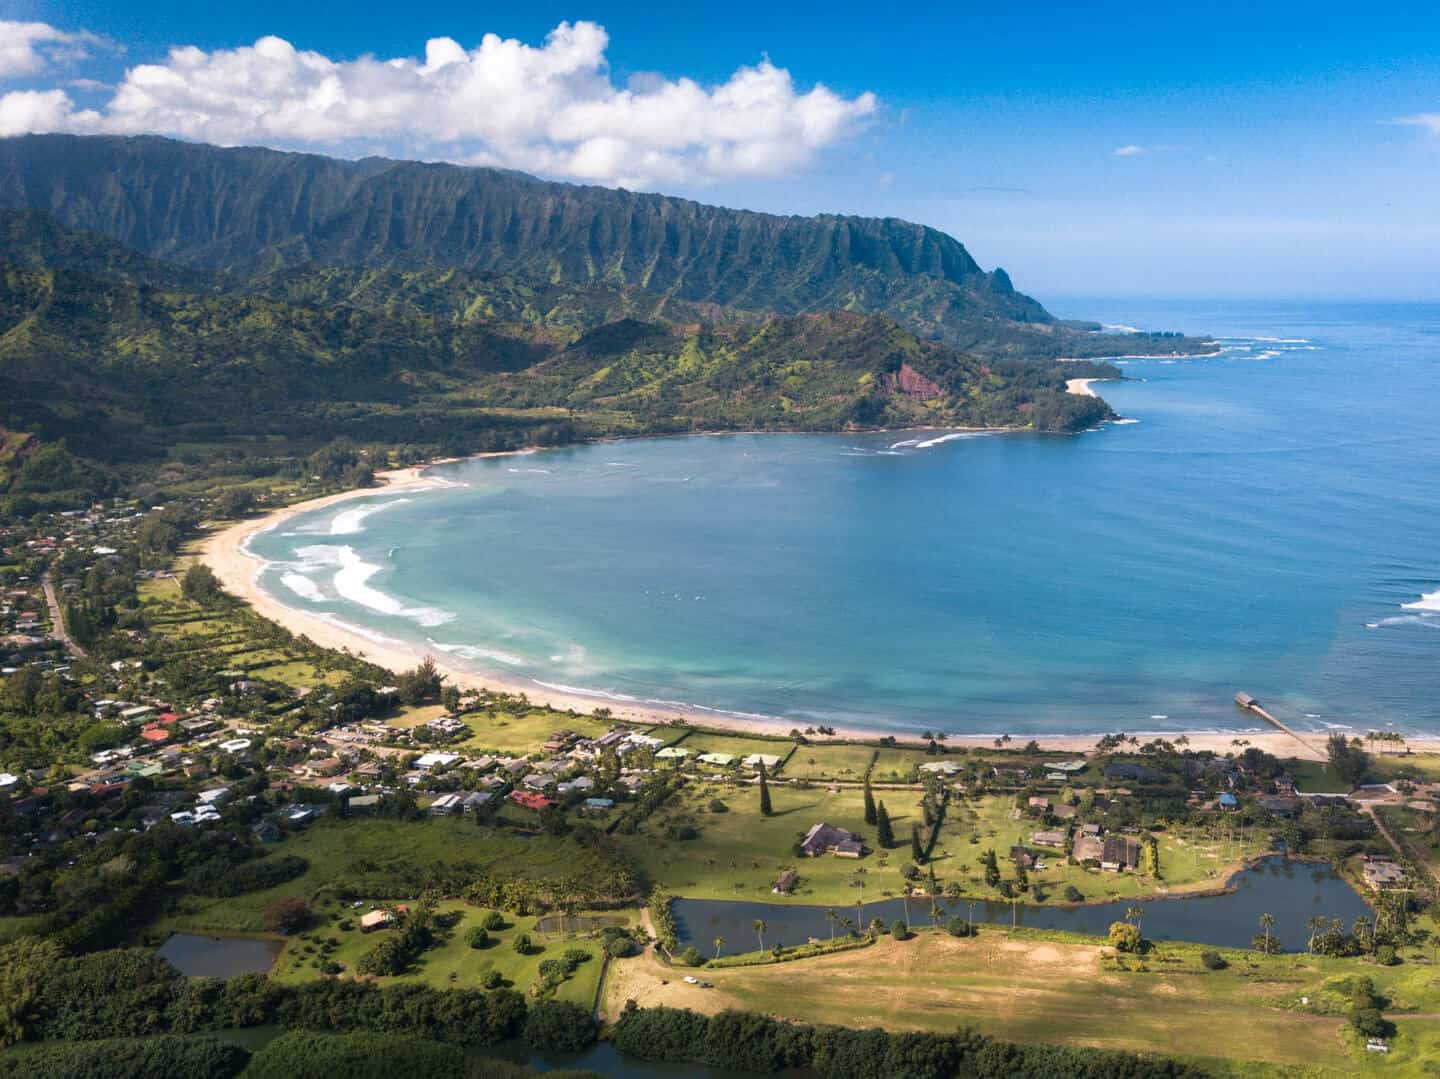 A view of the magnificent Hanalei Bay, where you will spend your final days in Kauai.